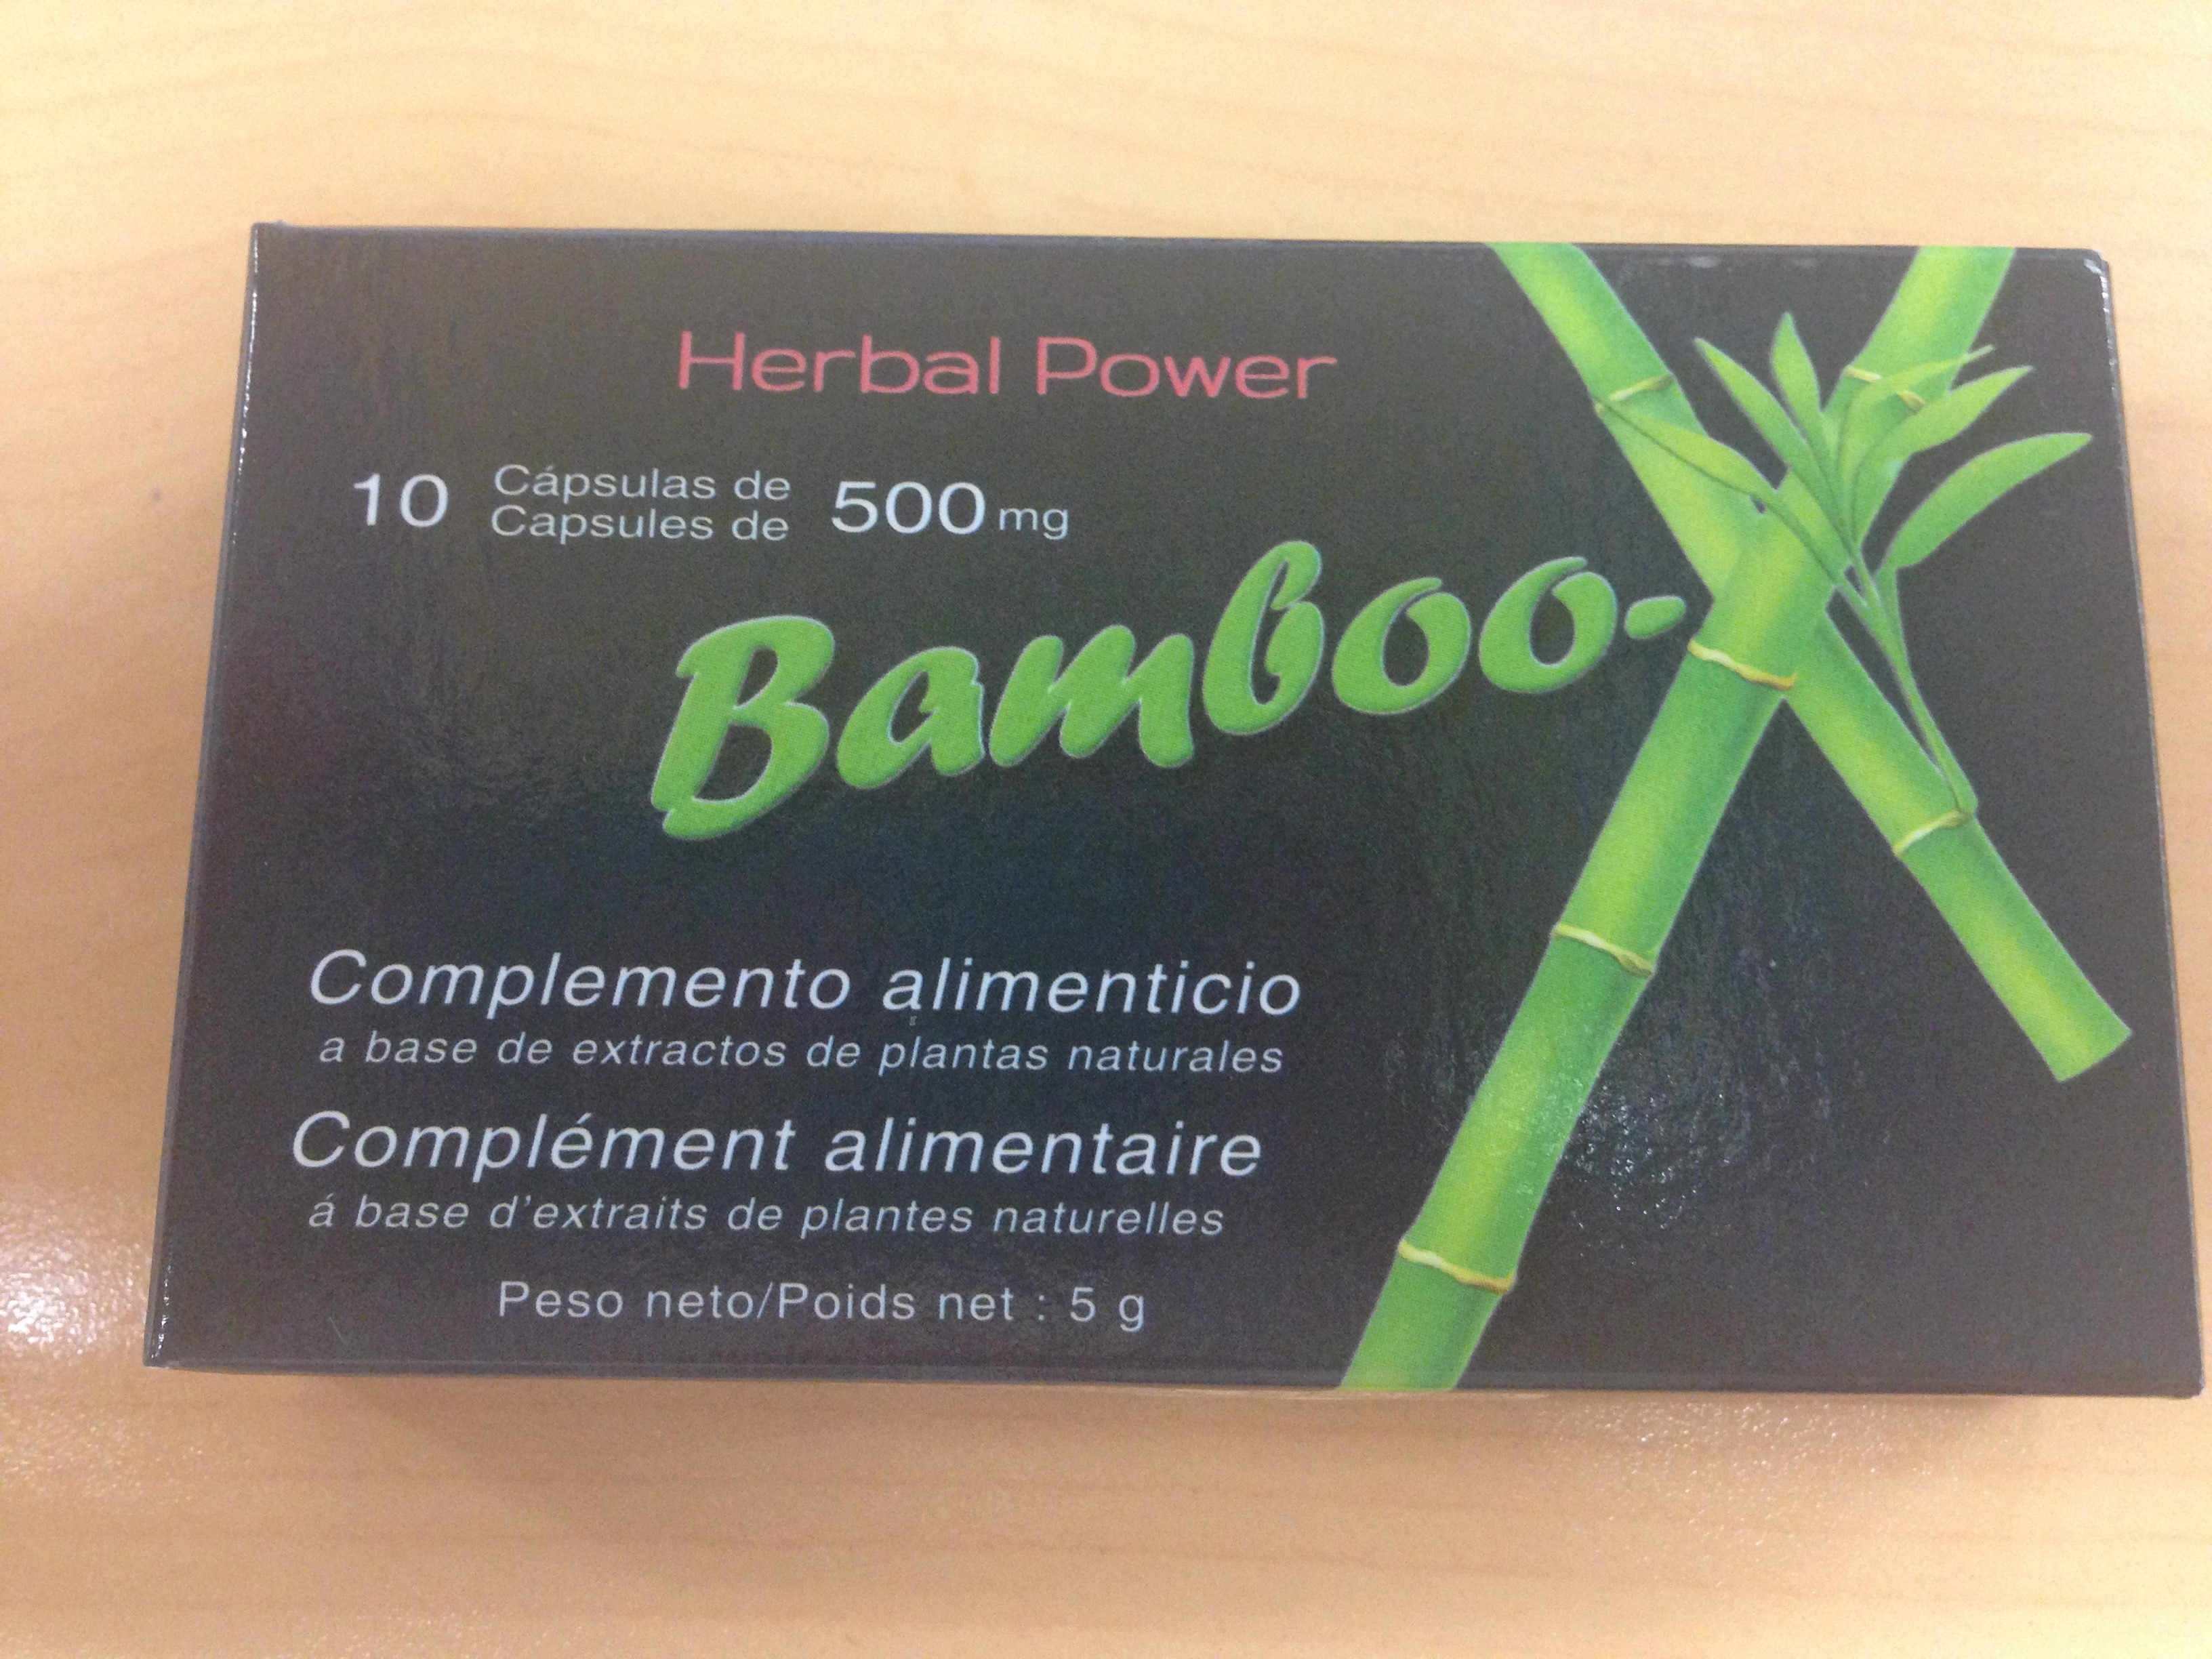 Image of the illigal product: Bamboo-X